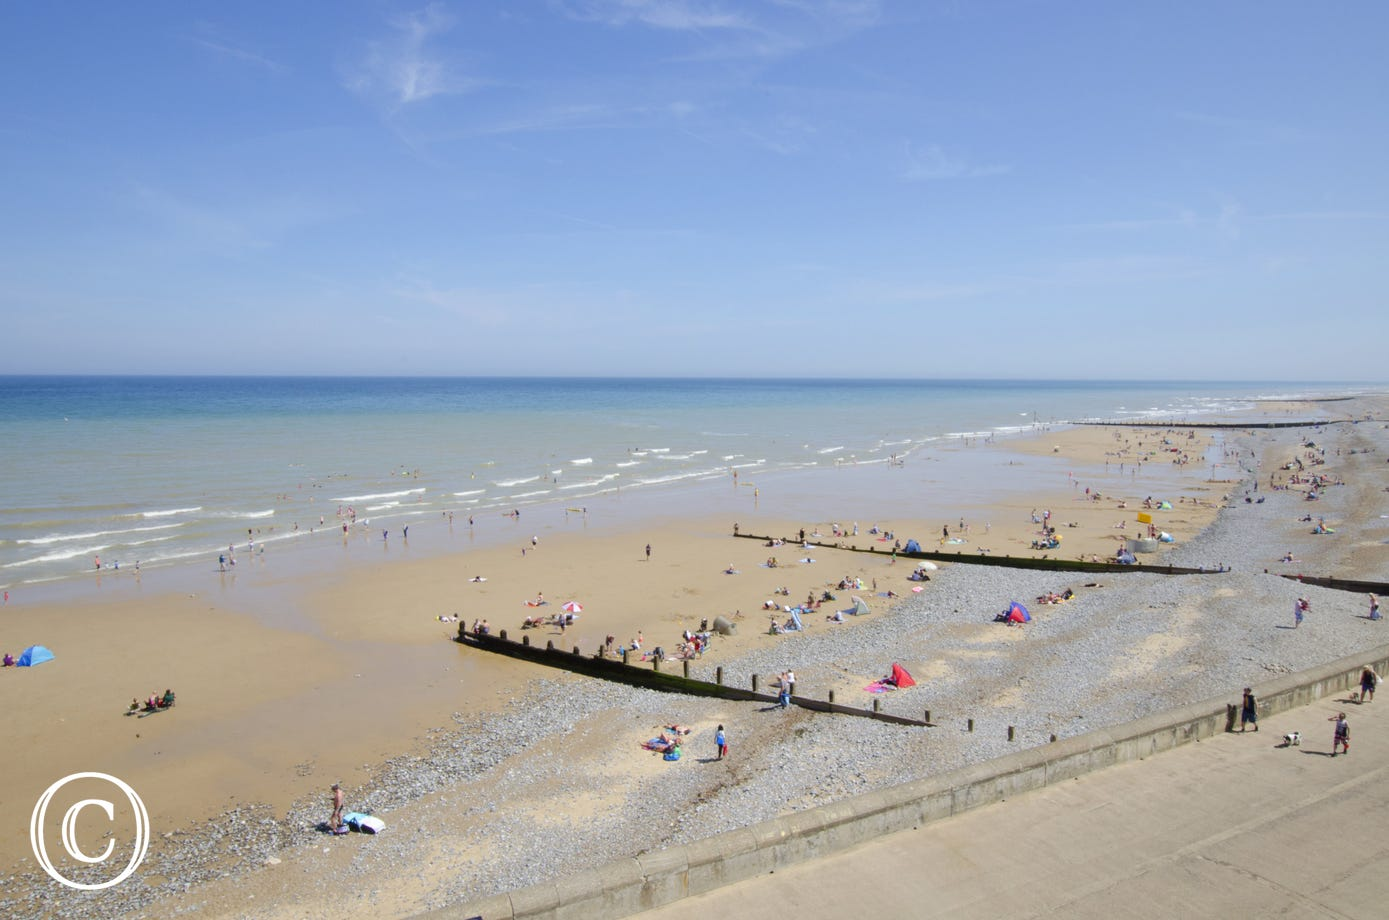 Cromer beach, just 4 miles away